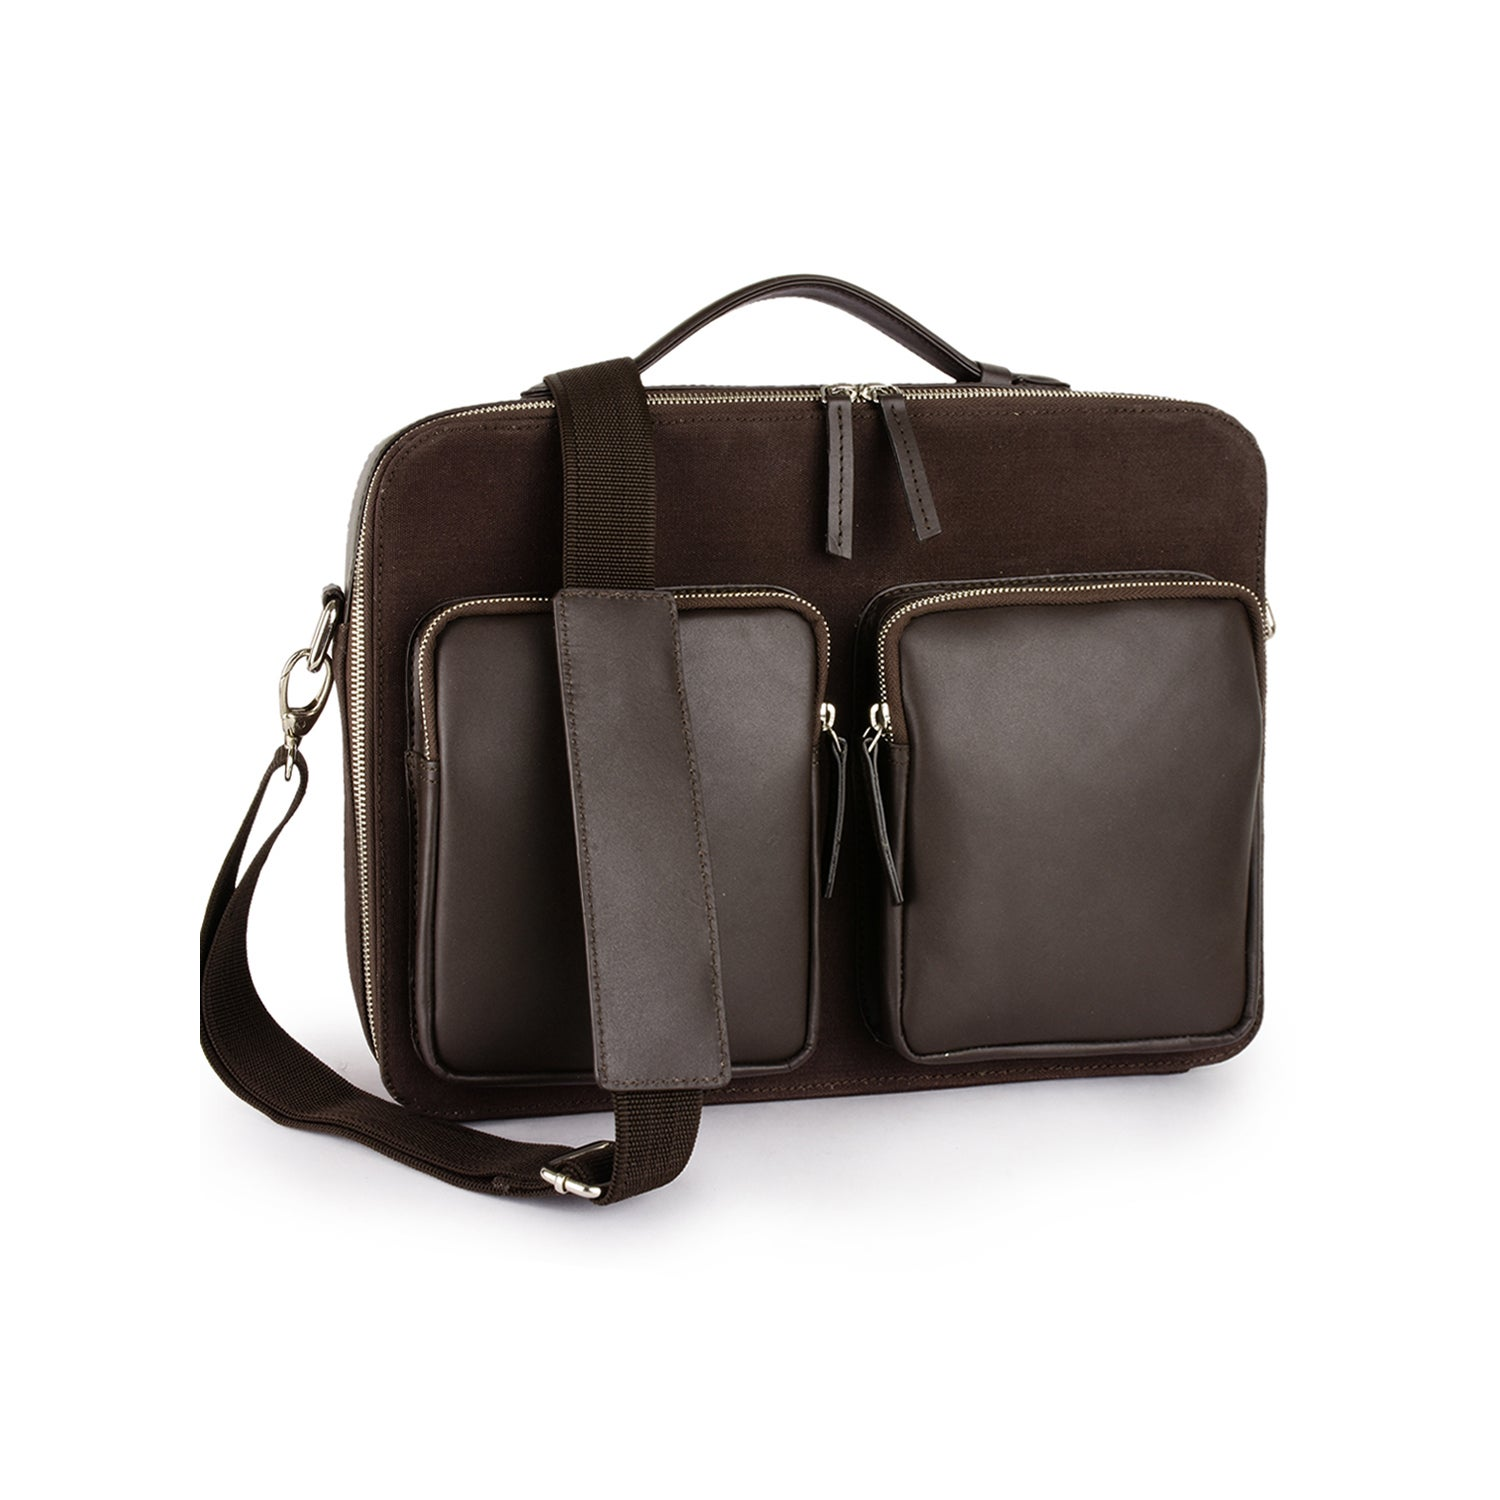 Handmade Phive Rivers Men S Canvas Messenger Bag Brown Italy Free Shipping Today 22702693